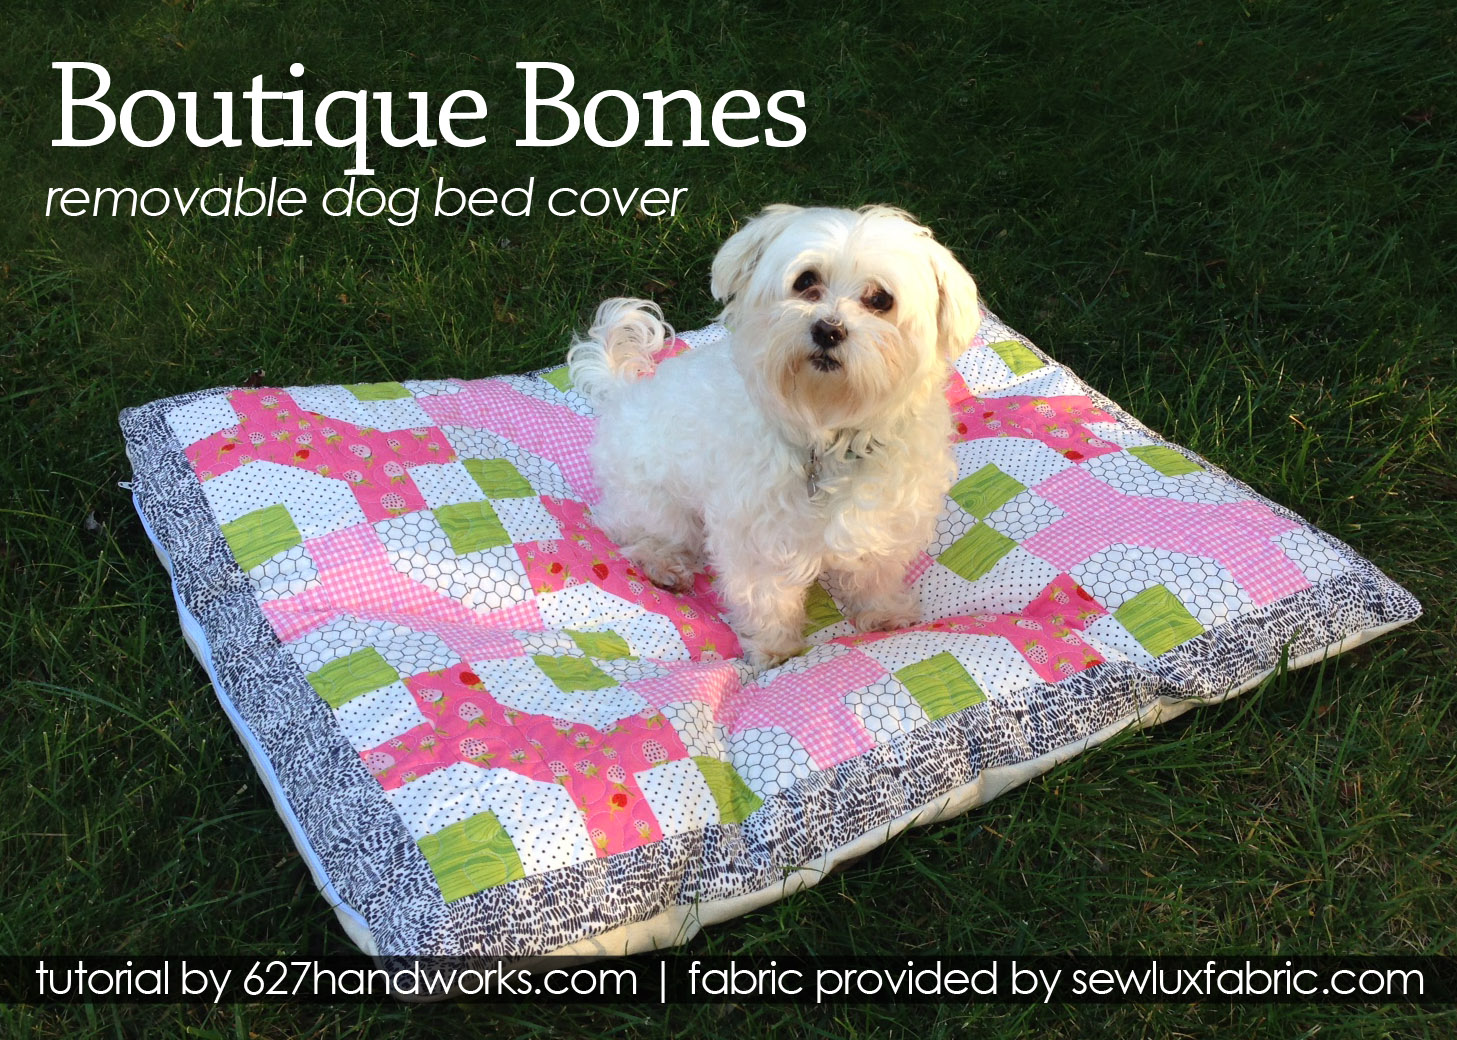 Tutorial Boutique Bones Removable Dog Bed Cover